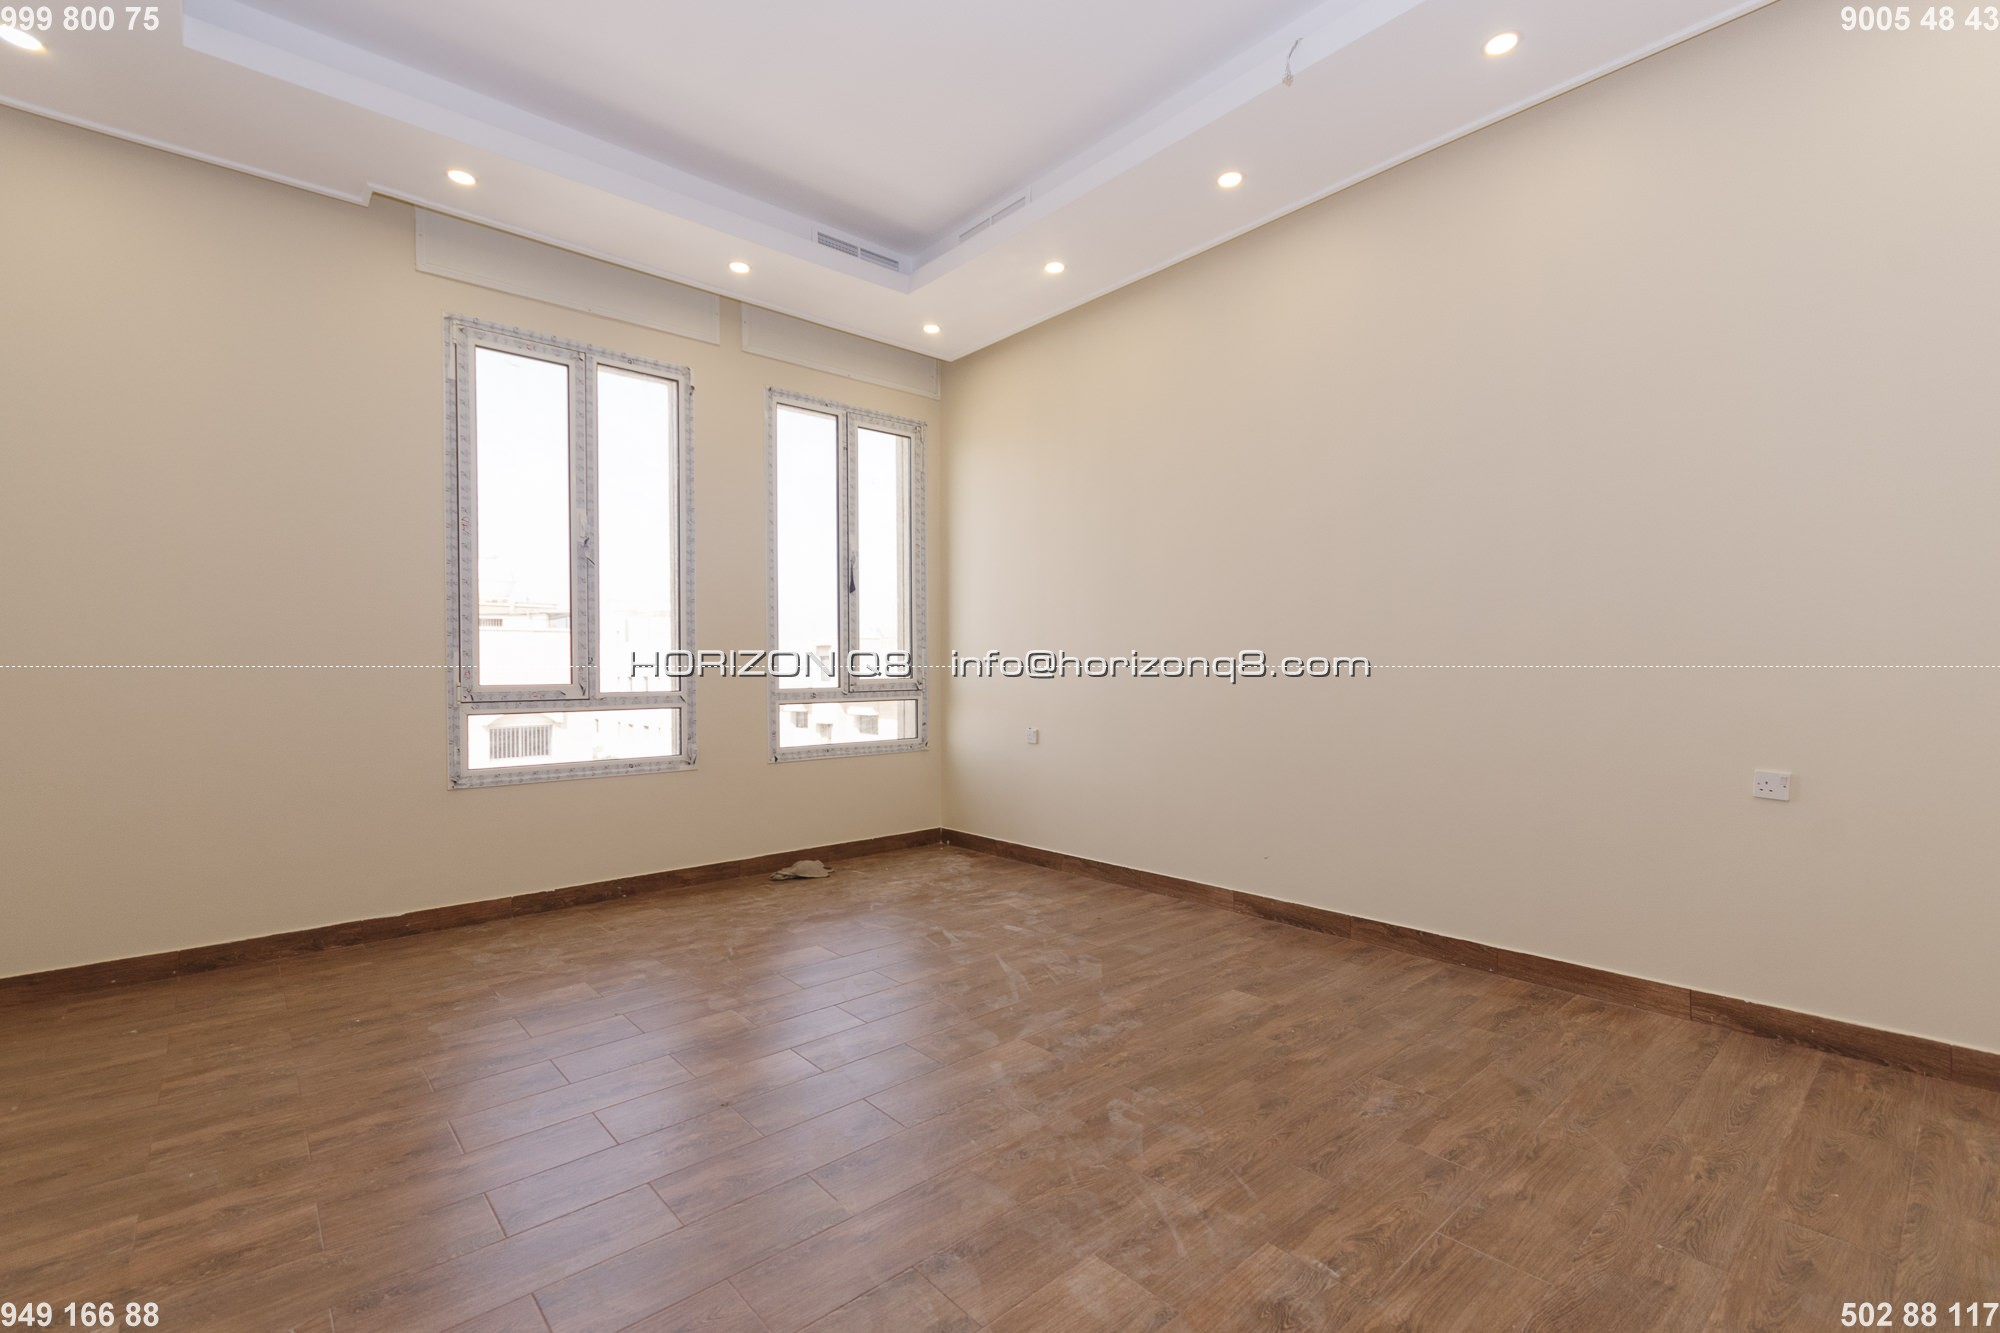 Salwa new unfurnished four bedroom apartments MD